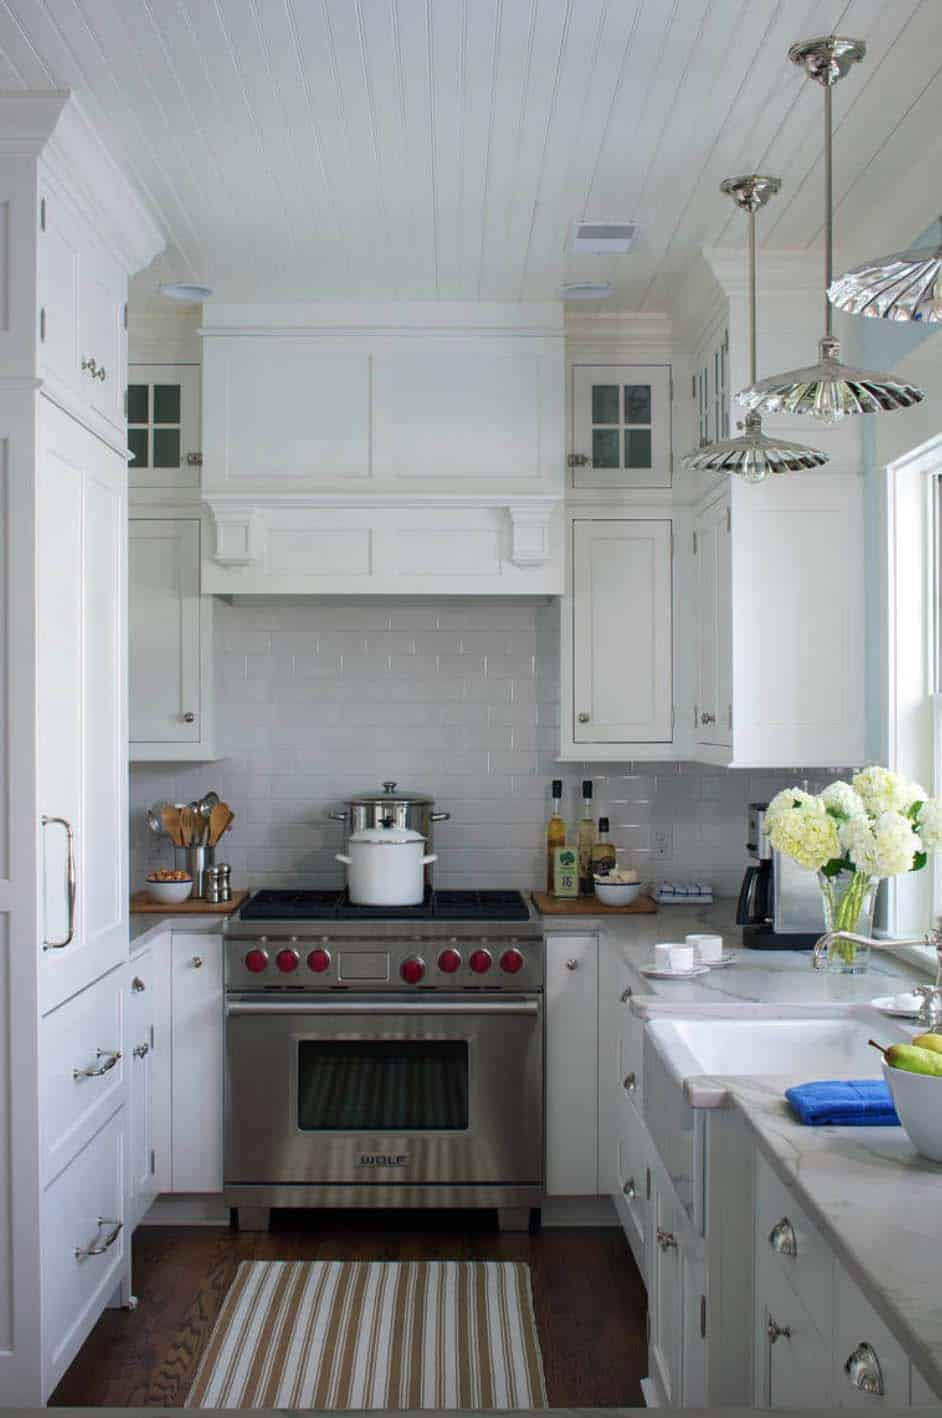 12 Gorgeous Farmhouse Kitchen Cabinets Design Ideas